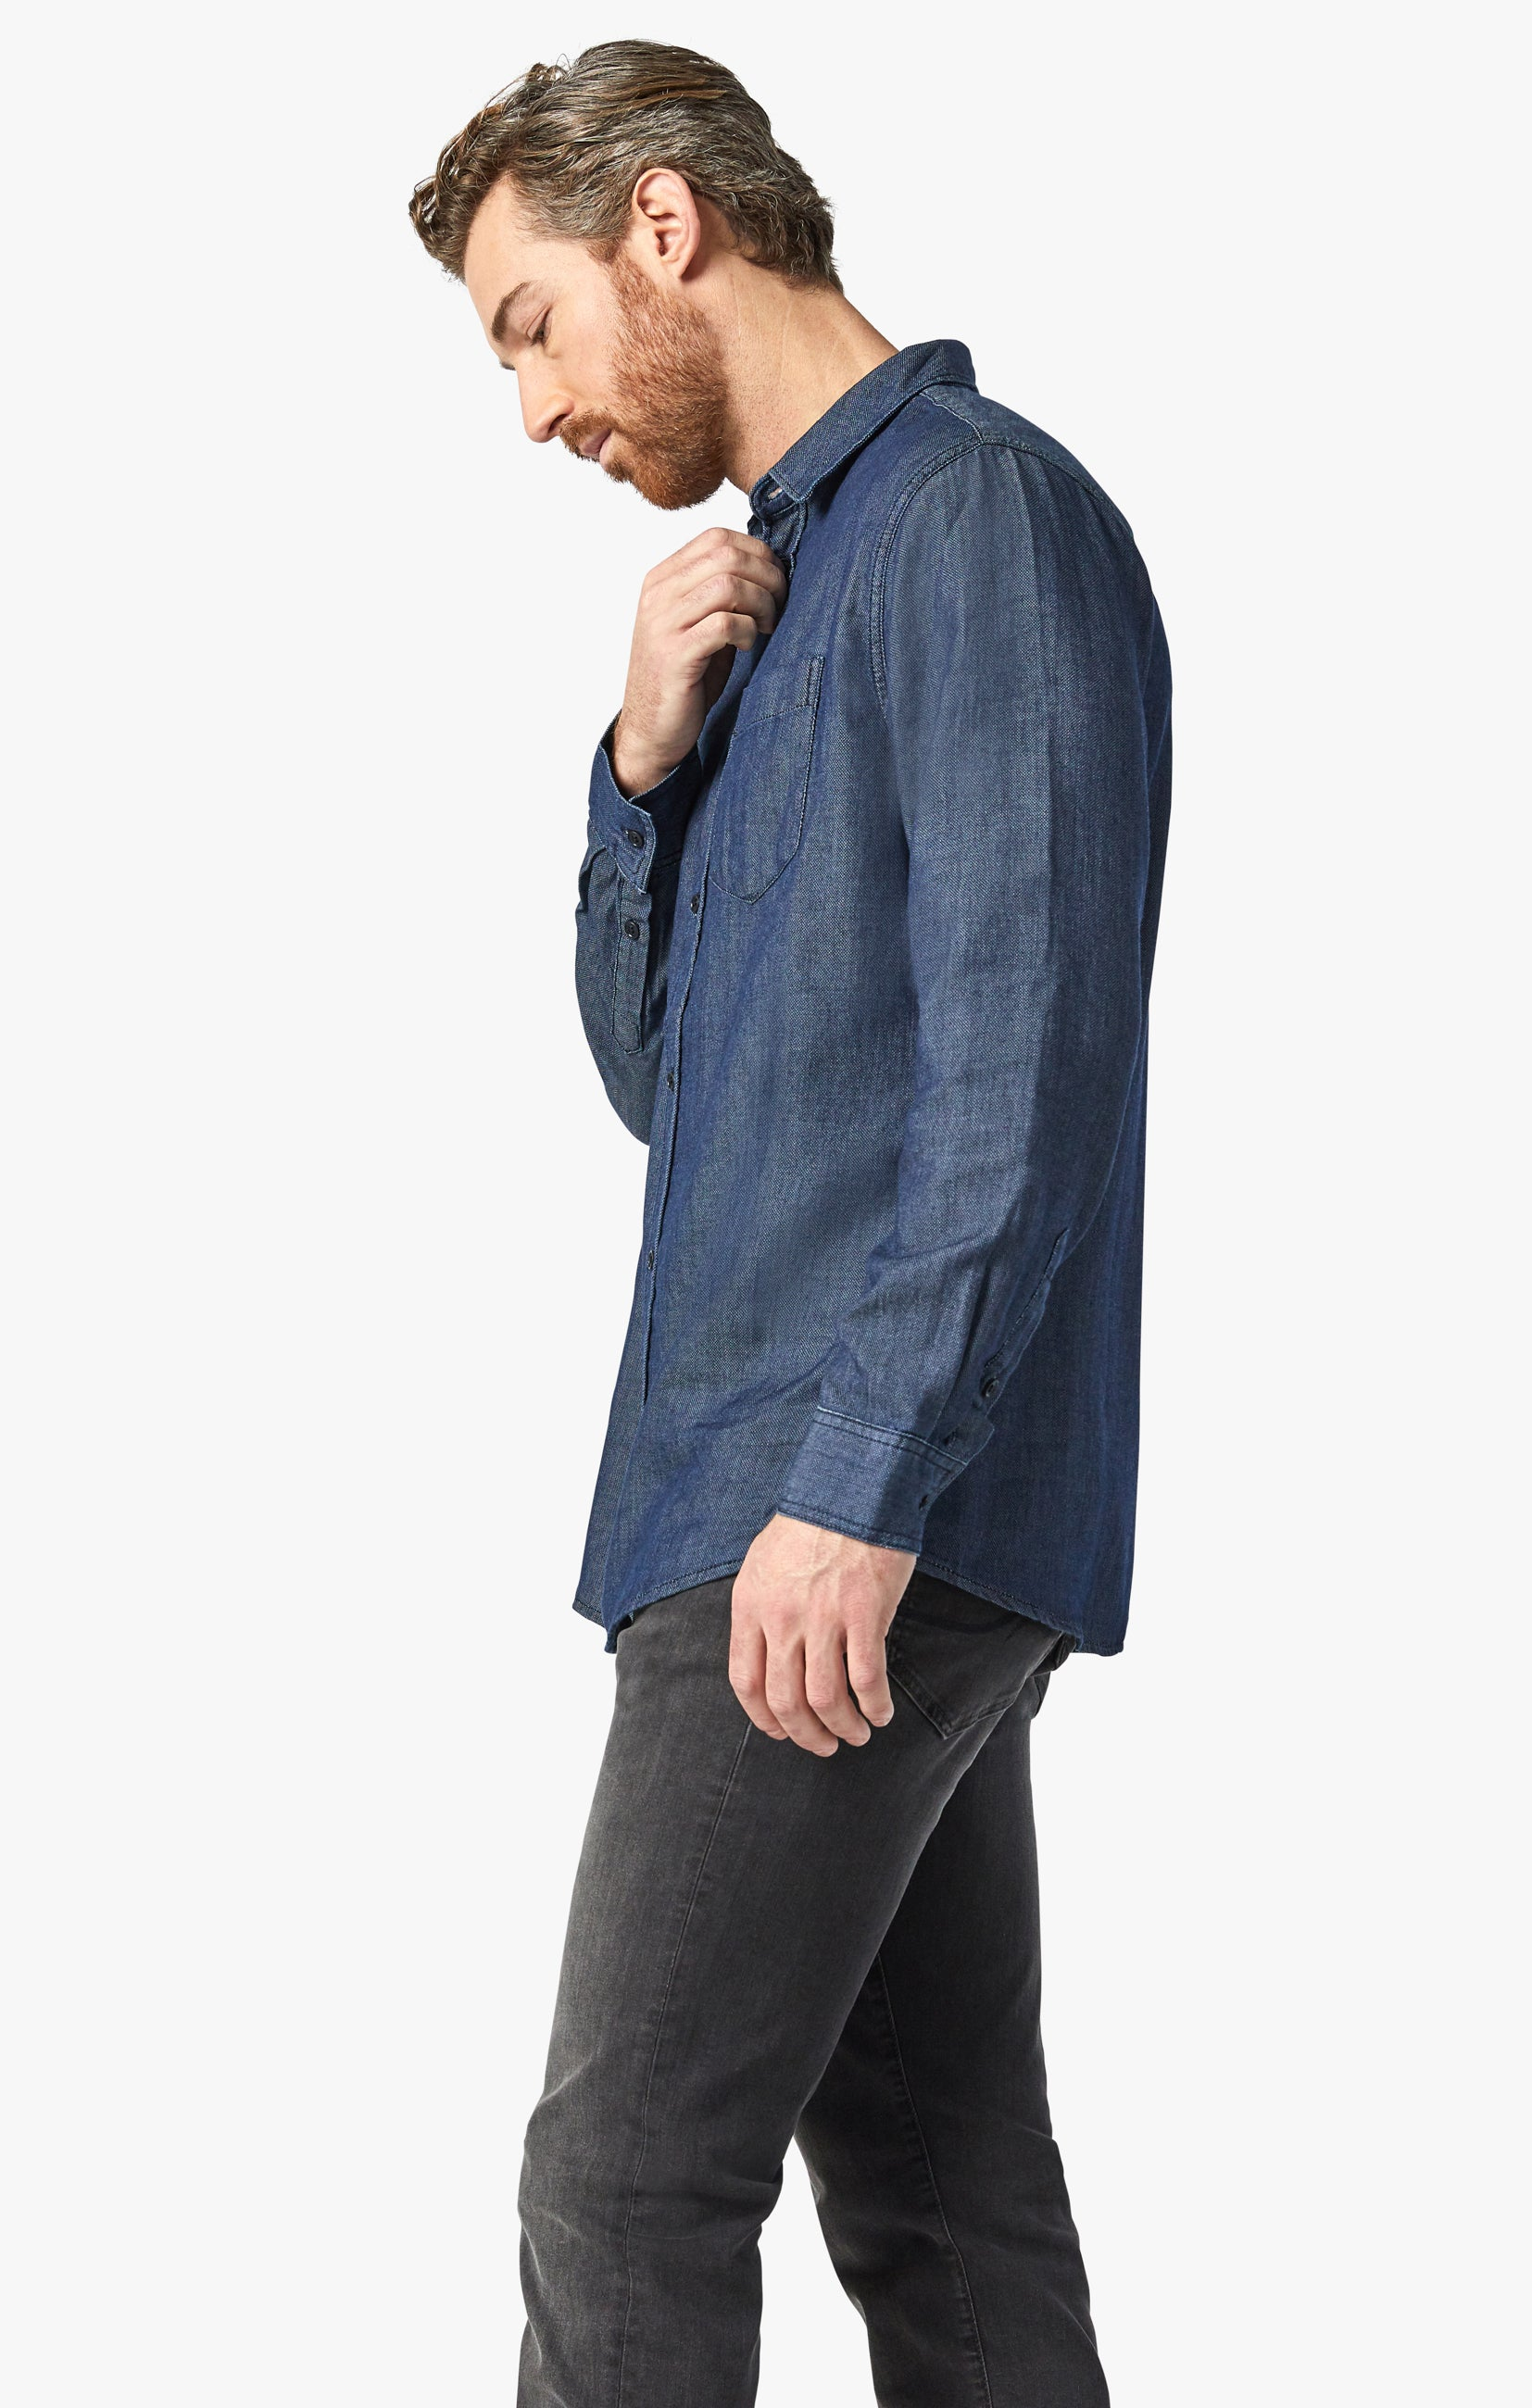 Chris Denim Shirt In Rinse Image 4